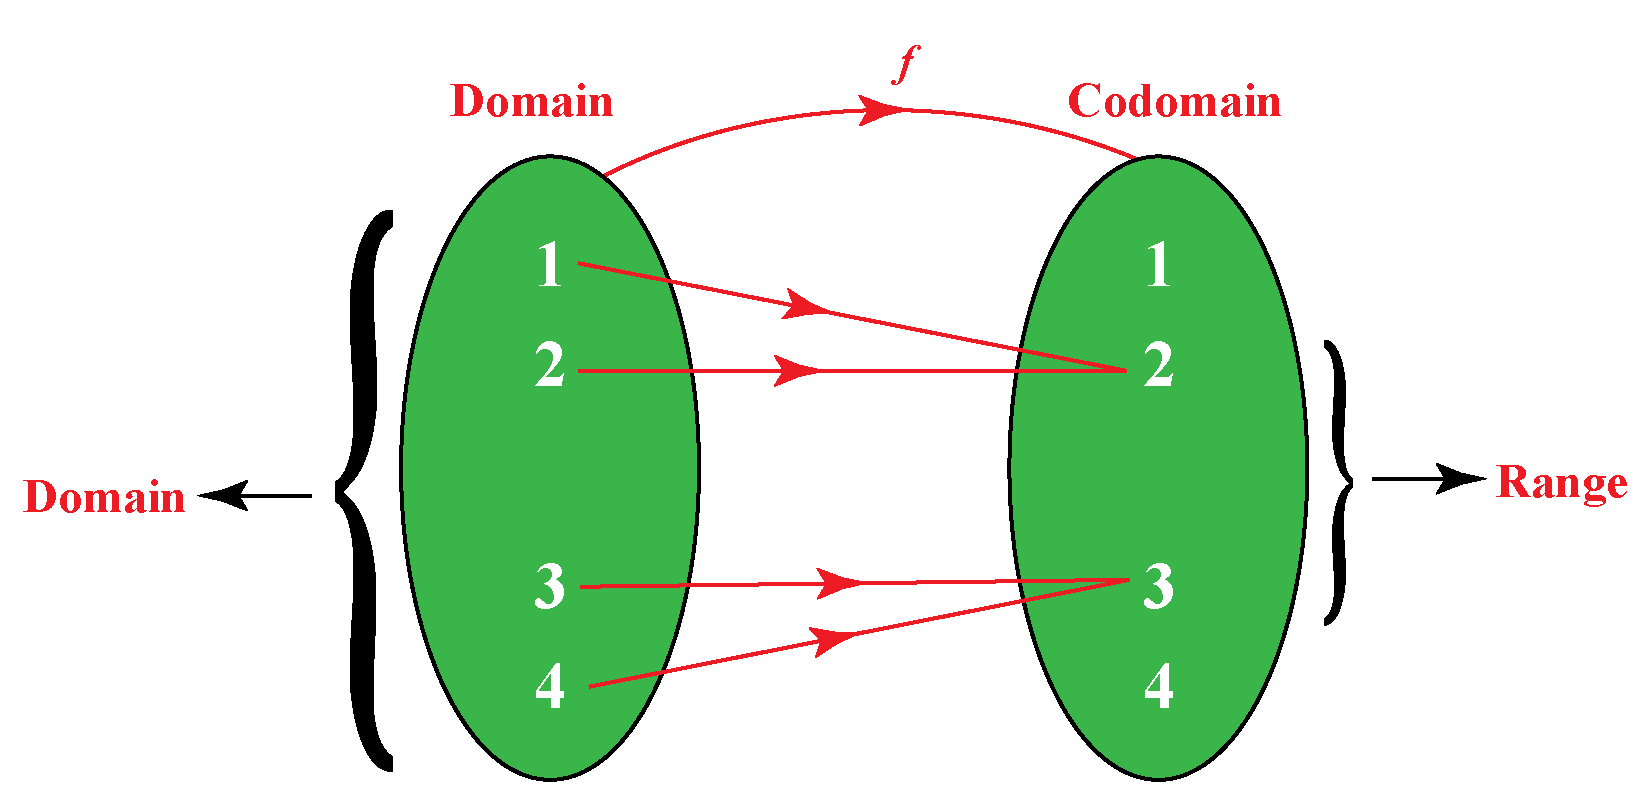 Domain and range definition